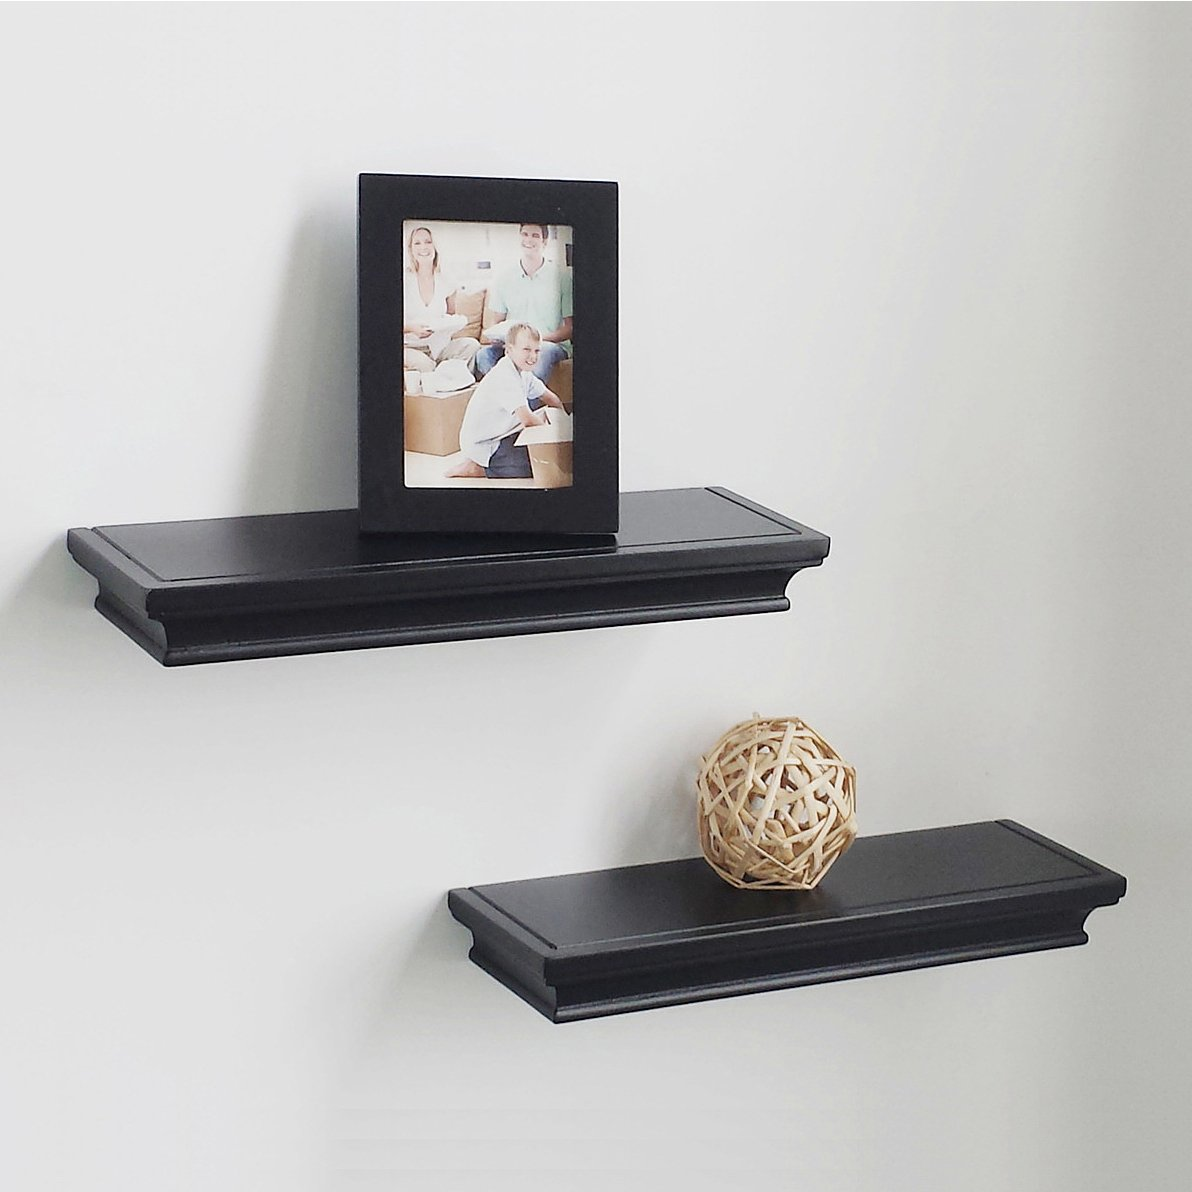 hao set approx depth floating wall shelf wooden black wood shelves ledge household storage shelving home kitchen white mantel television table stand single glass mount steel rod